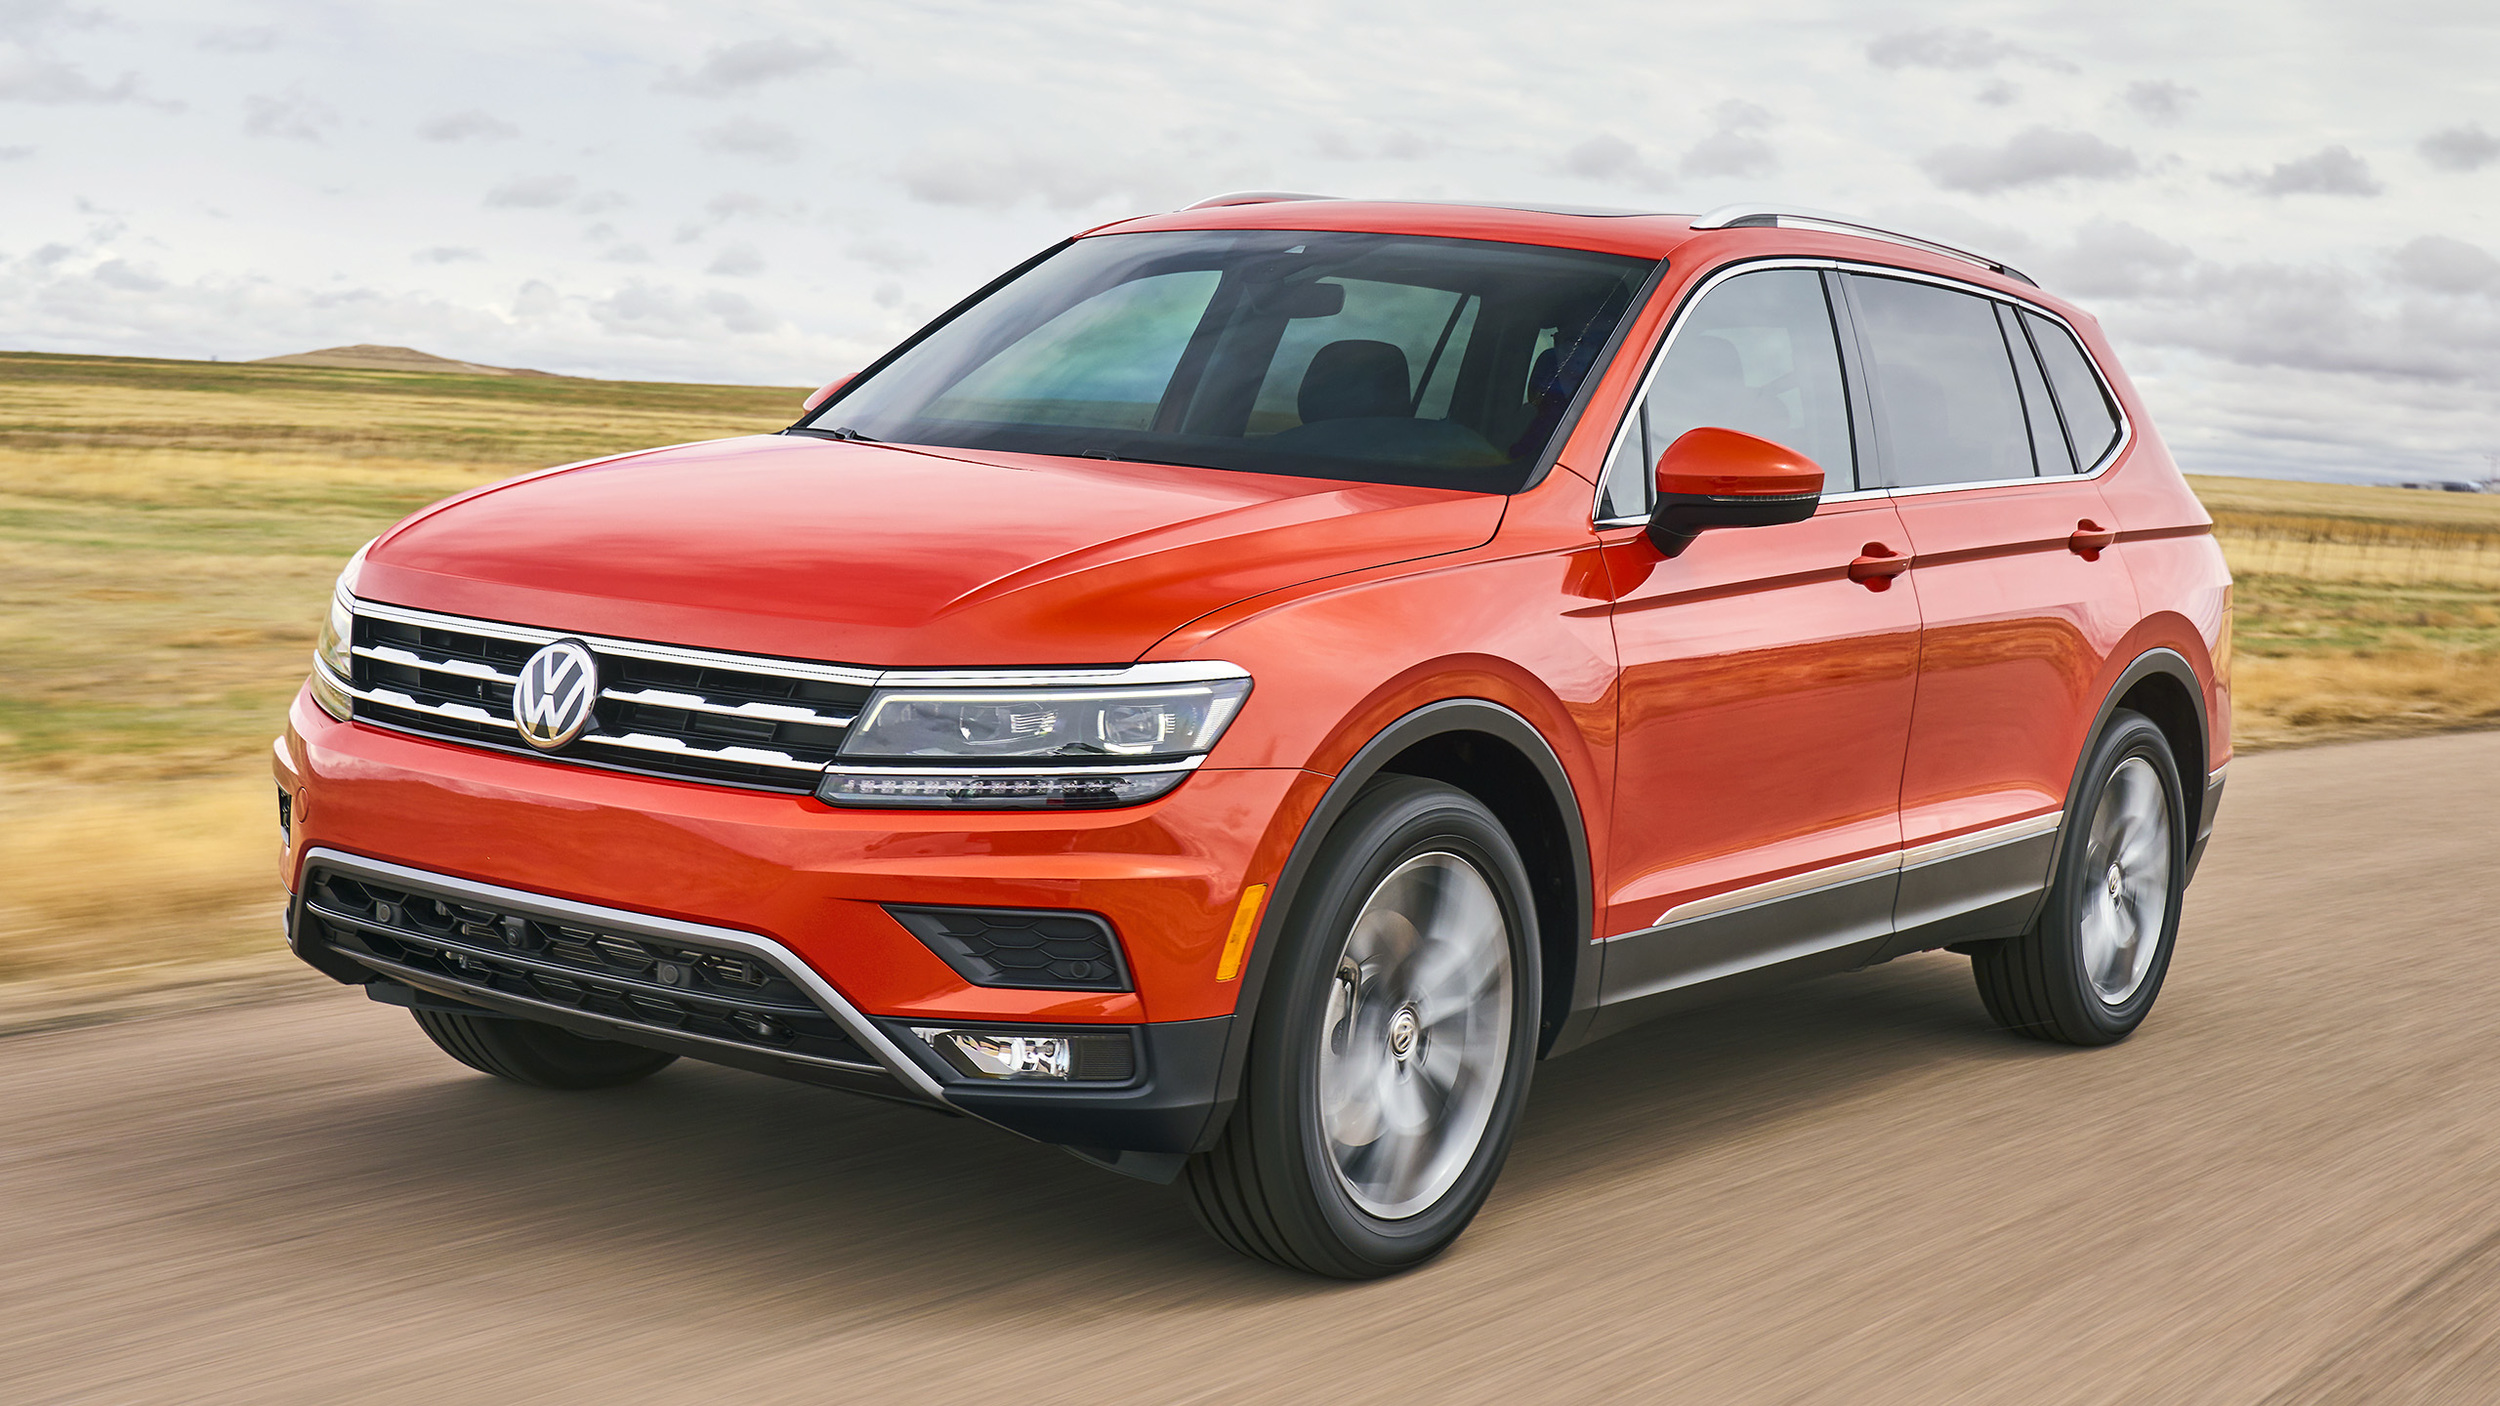 2018 VW Tiguan: Changes, Engines, 3-rd Row Seats, Price >> 2018 Volkswagen Tiguan First Drive Imperfect Improvement